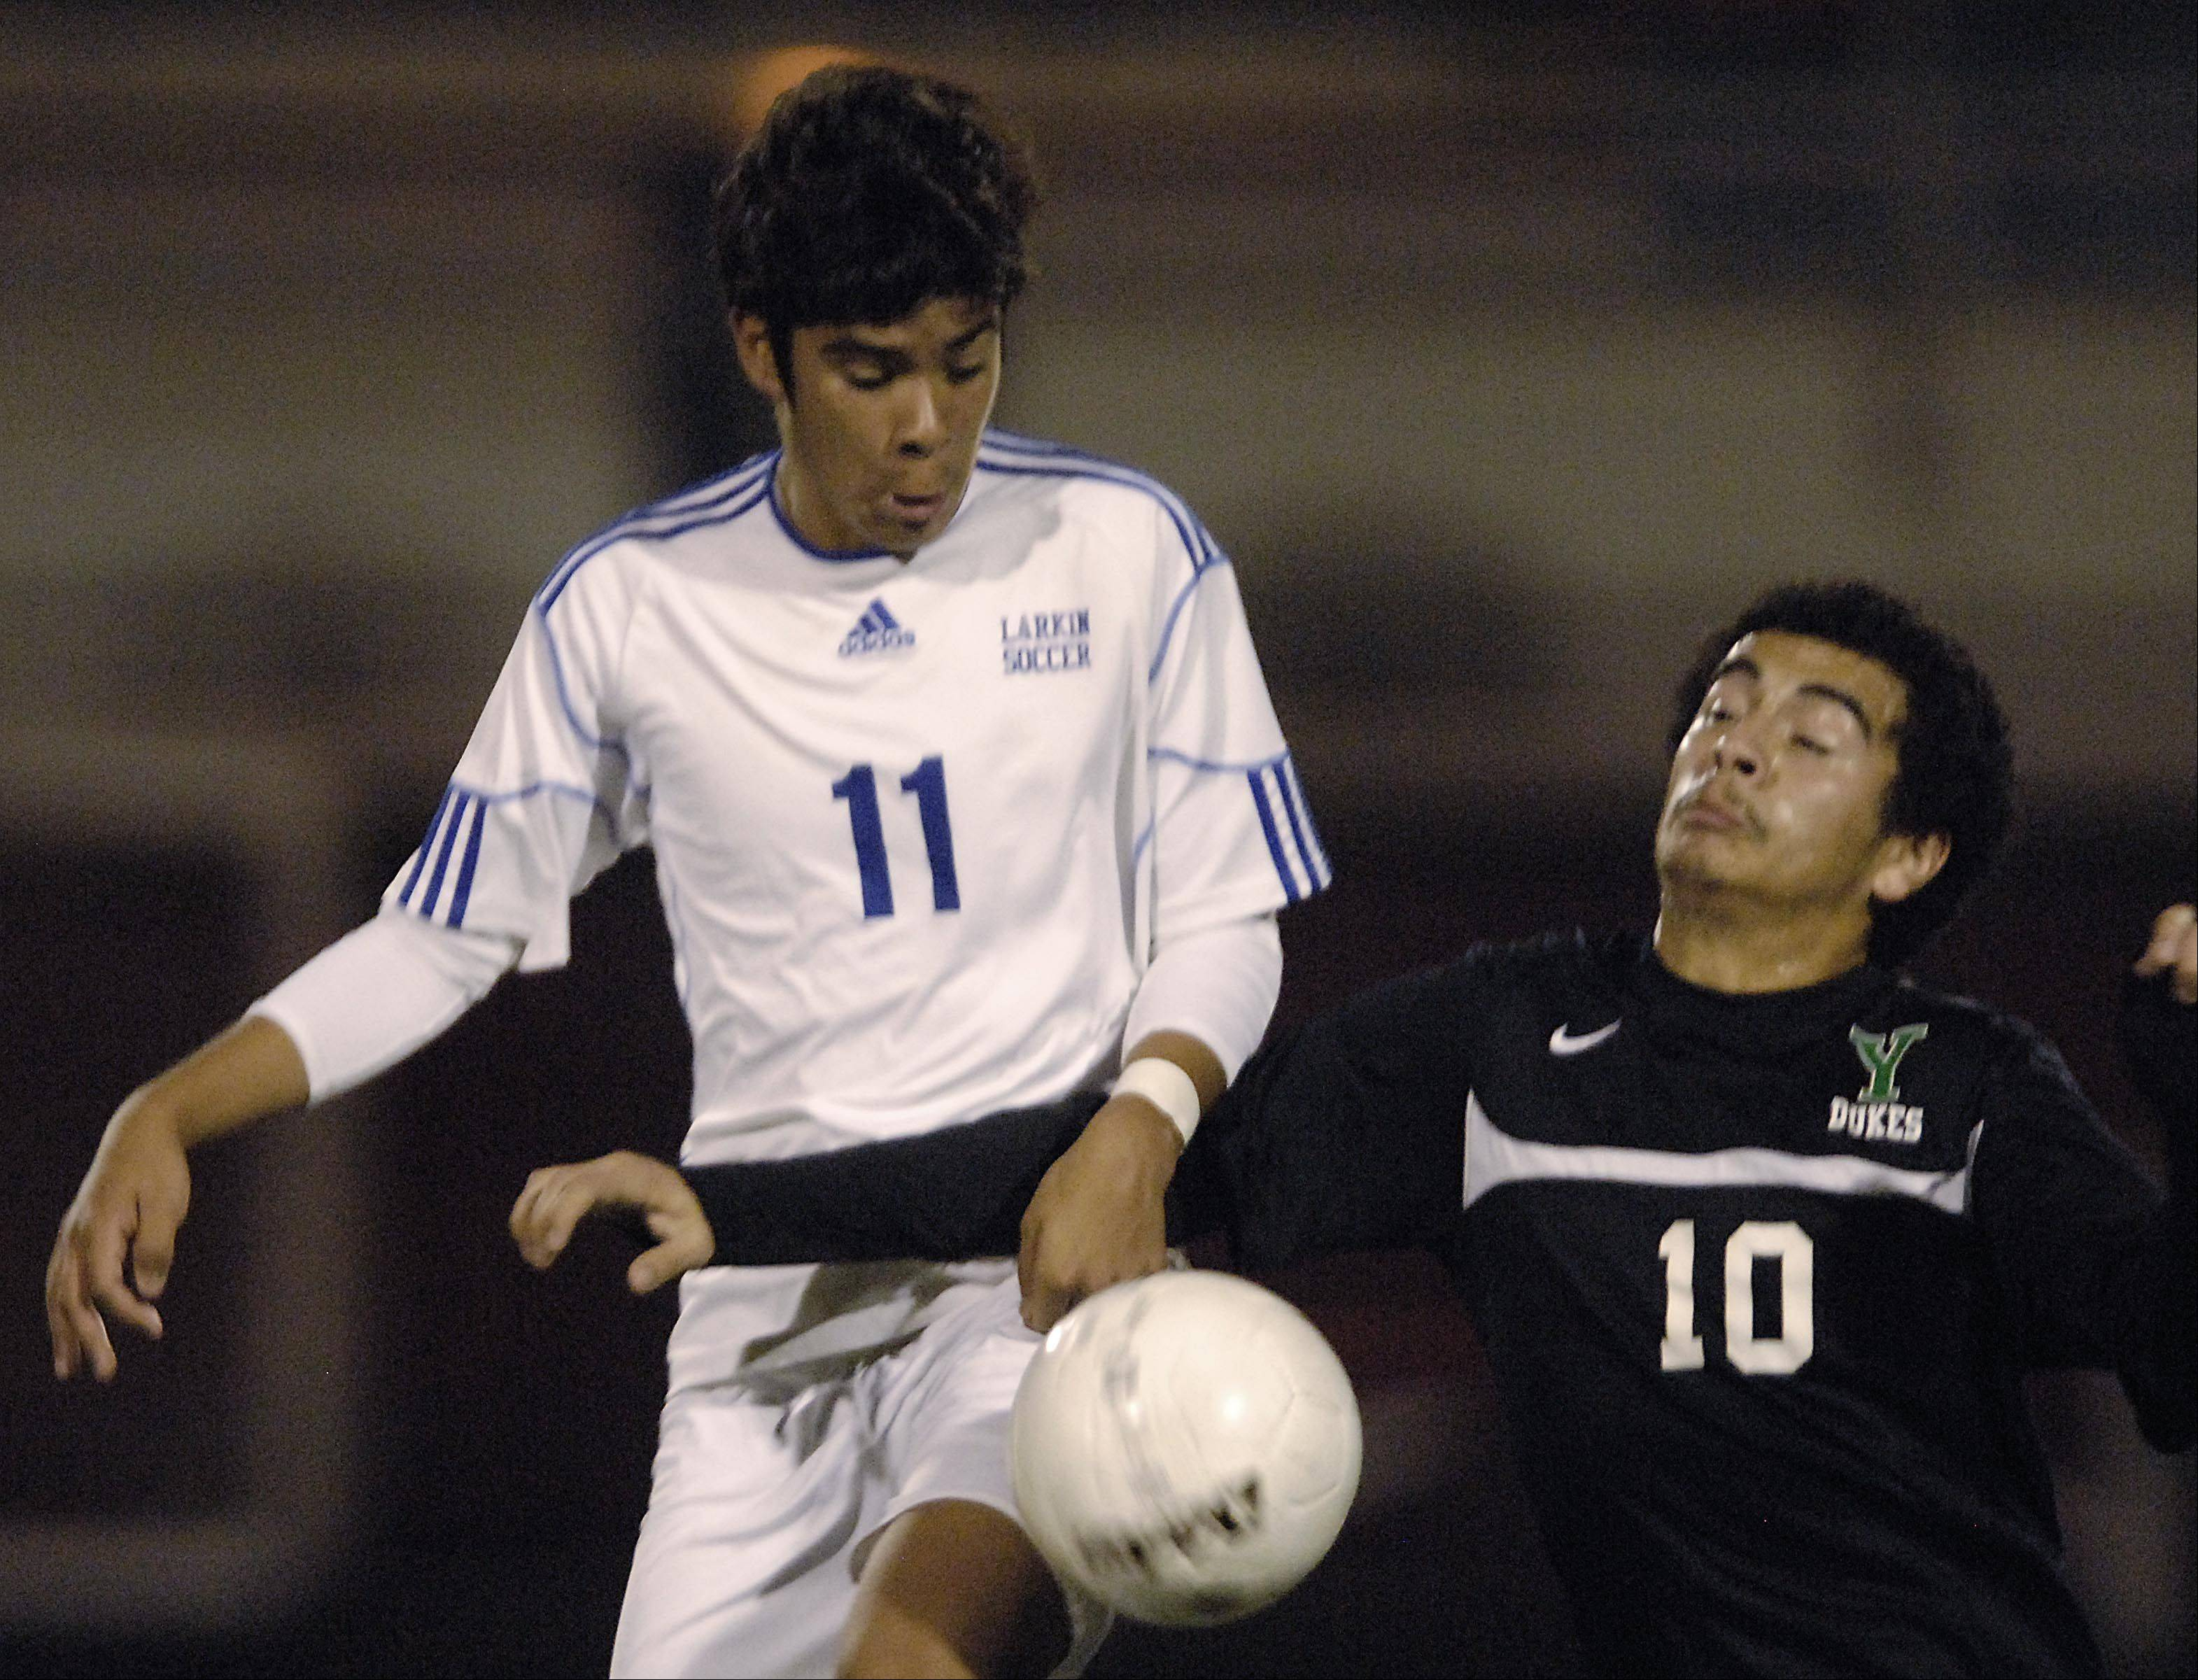 Larkin's Diego Ramirez and York's Victor Martinez, right, battle Tuesday in the Schaumburg regional playoff game.